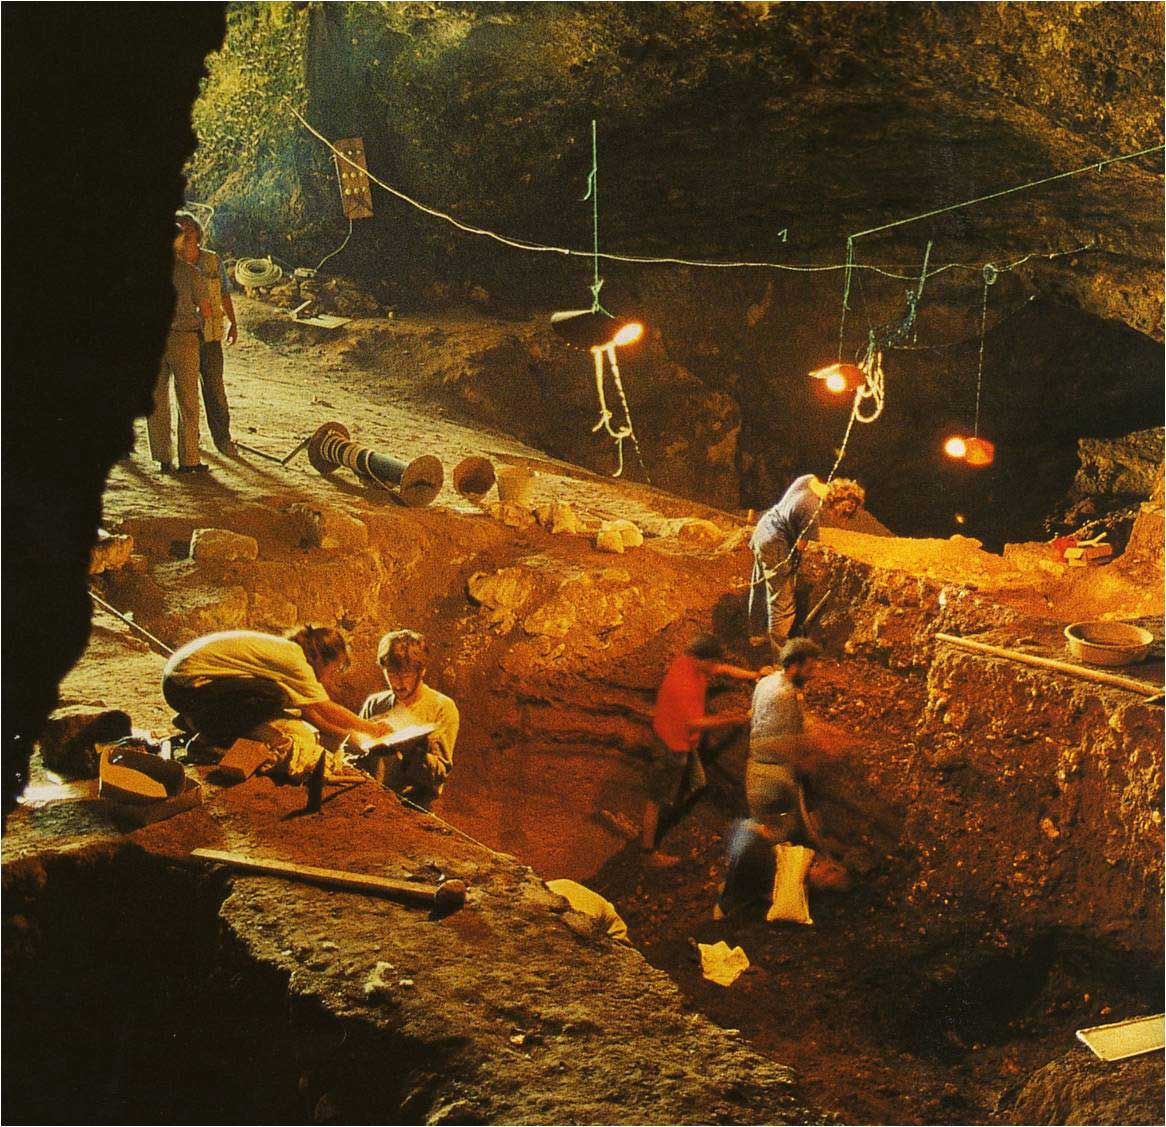 Excavations in Yarimburgaz Cave, Turkey.